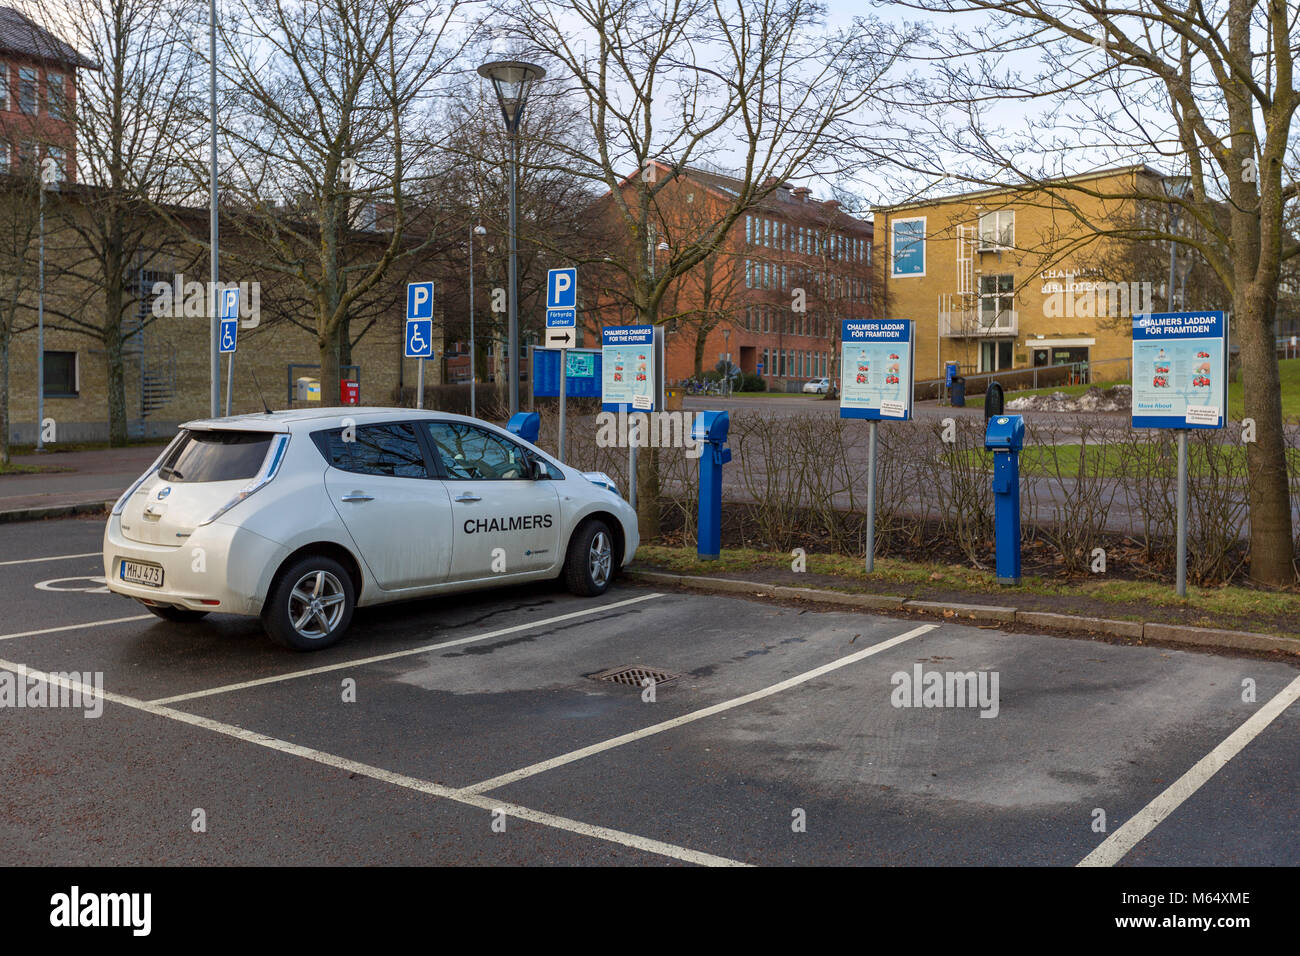 GOTHENBURG, SWEDEN - JANUARY 27 2018: Electric BMW car plugged into charging station, Chalmers University of Technology, - Stock Image